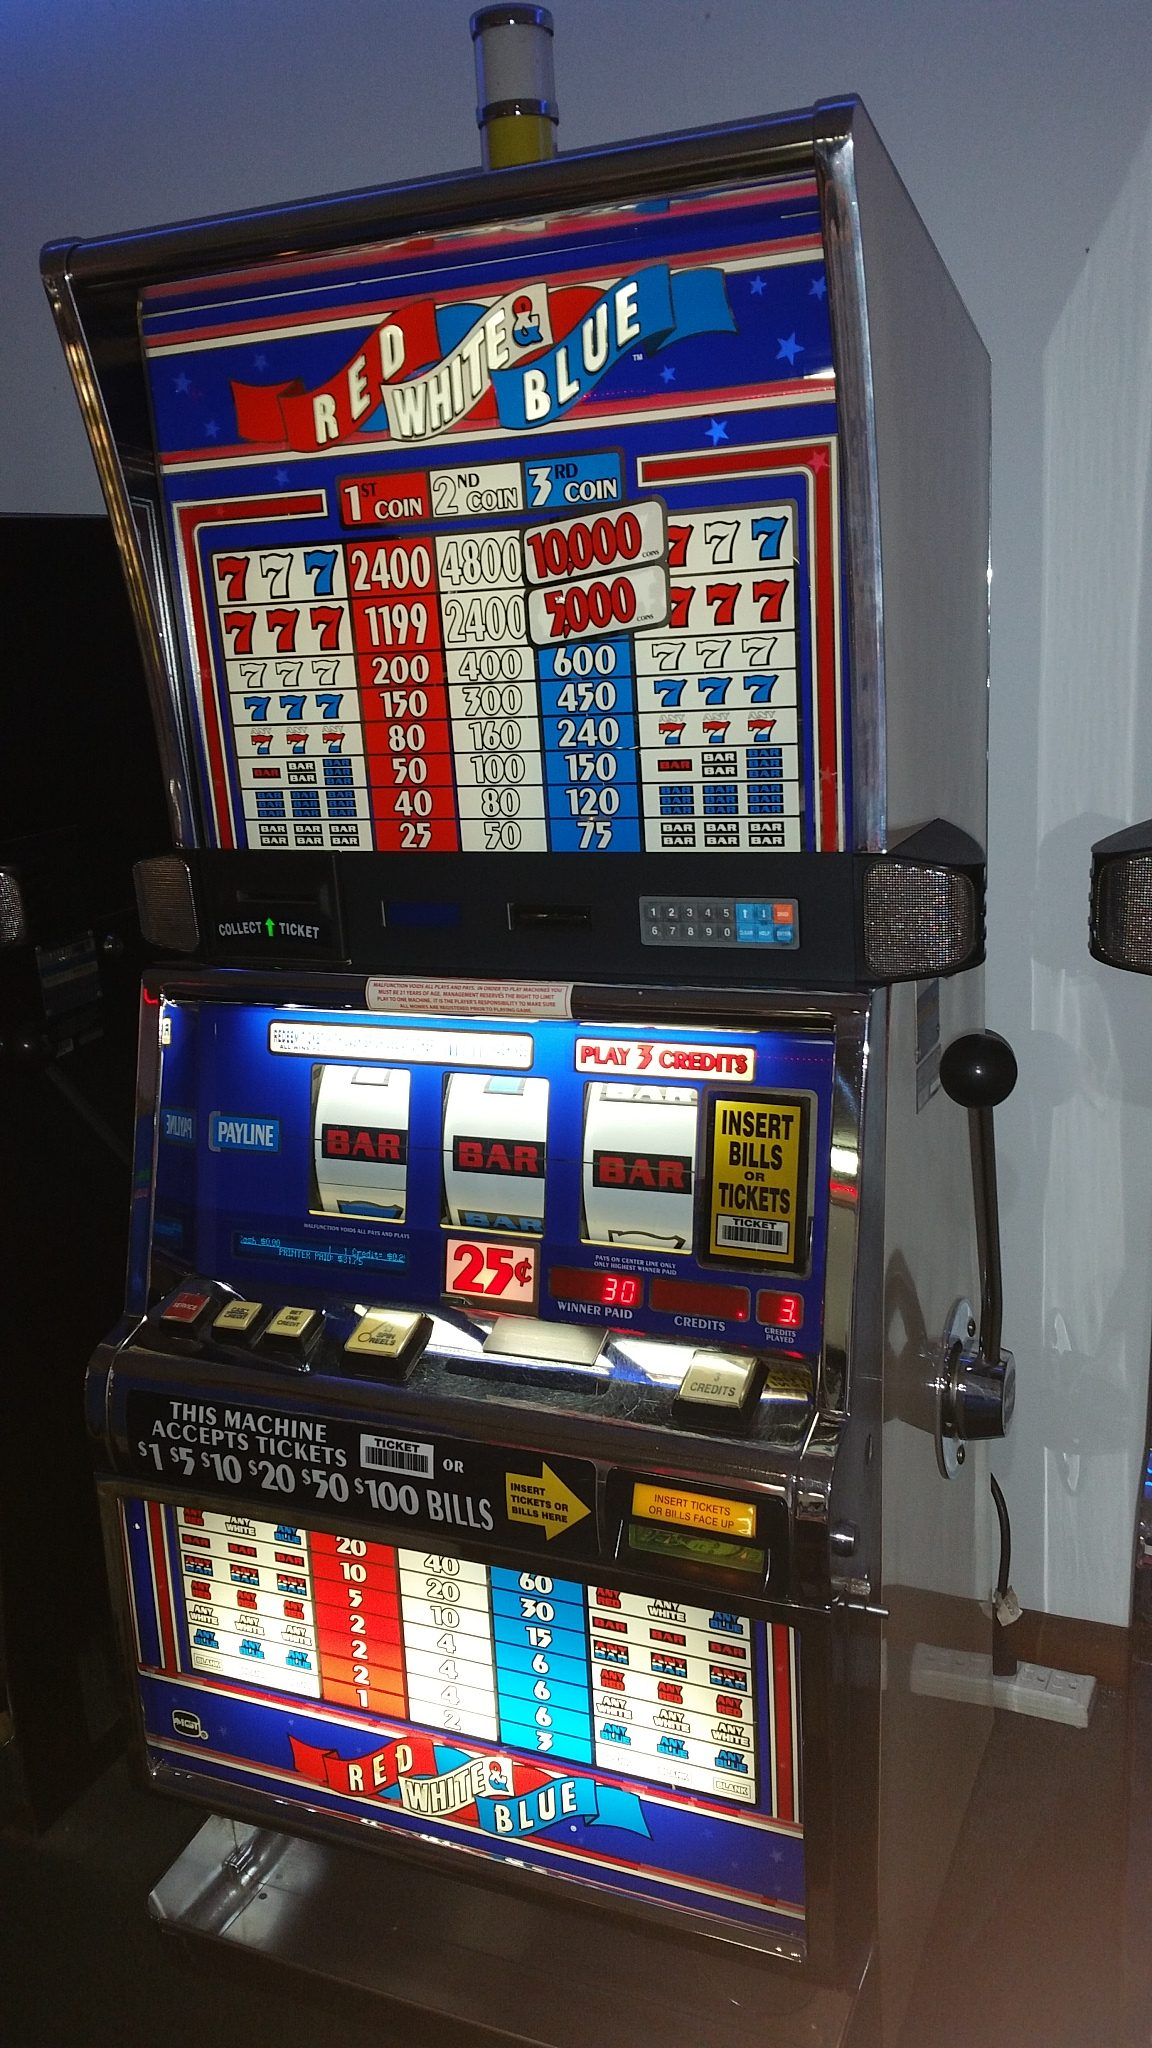 IGT S2000 Red White & Blue 3 Coin .25c Slot Machine